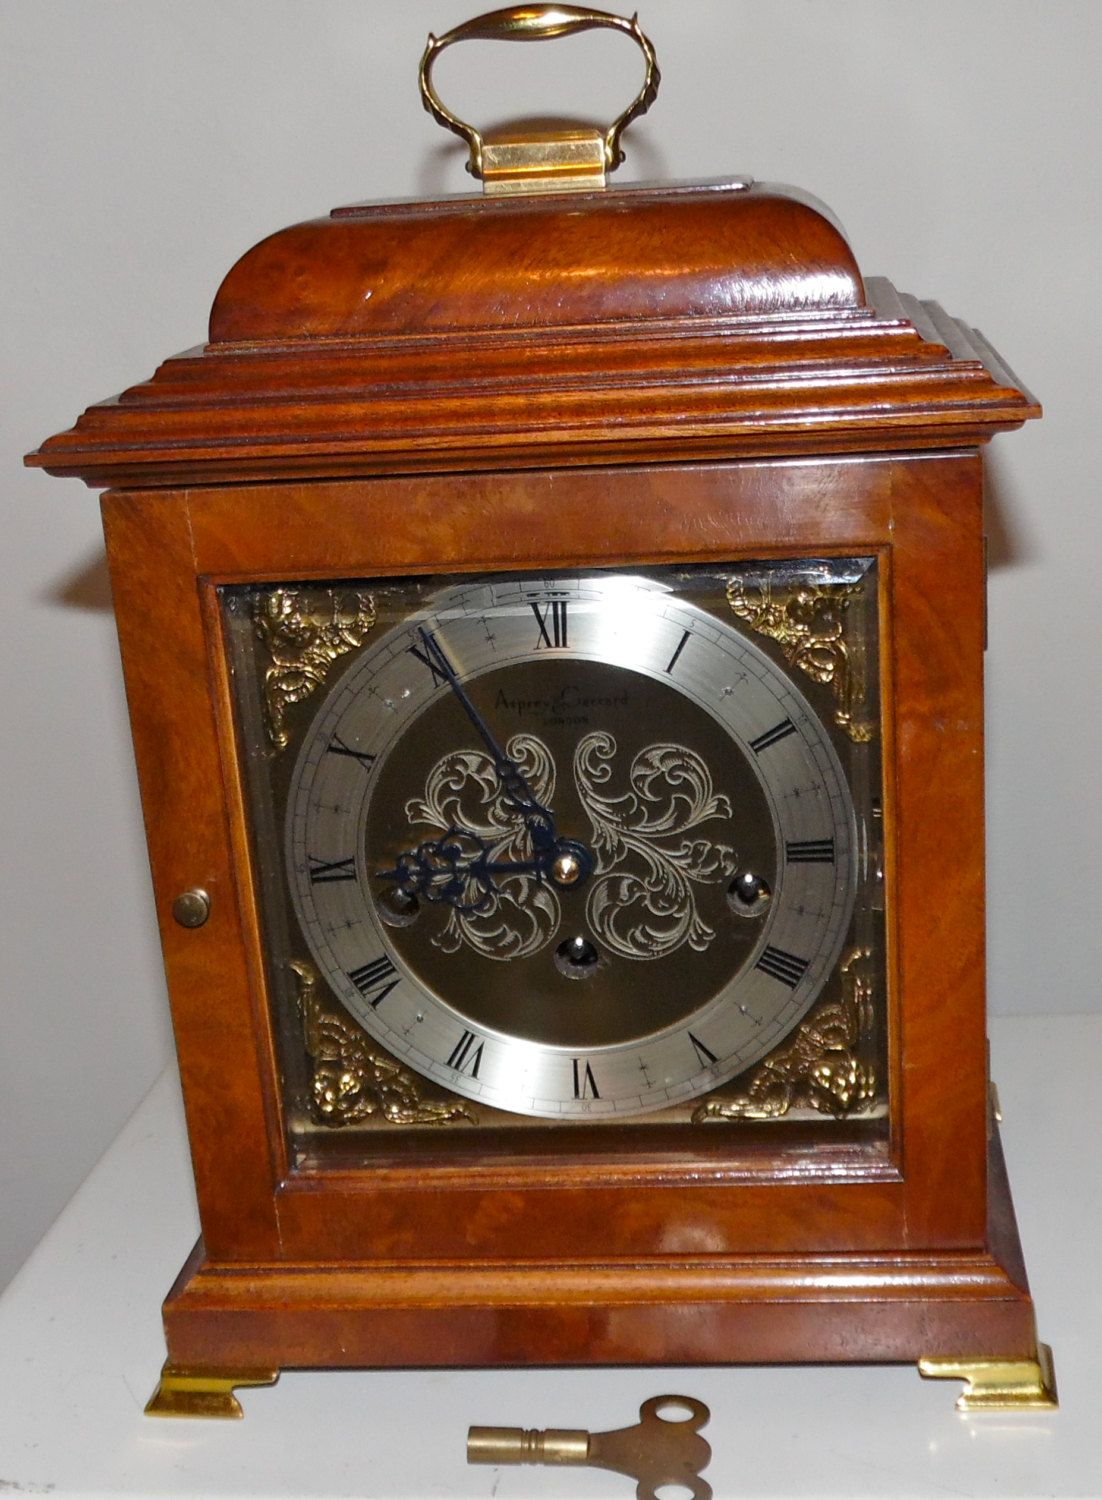 Comitti of london basket top mahogany bracket mantel clock comitti of london basket top mahogany bracket mantel clock westminster whittington chimes by squarenutsshop on amipublicfo Images